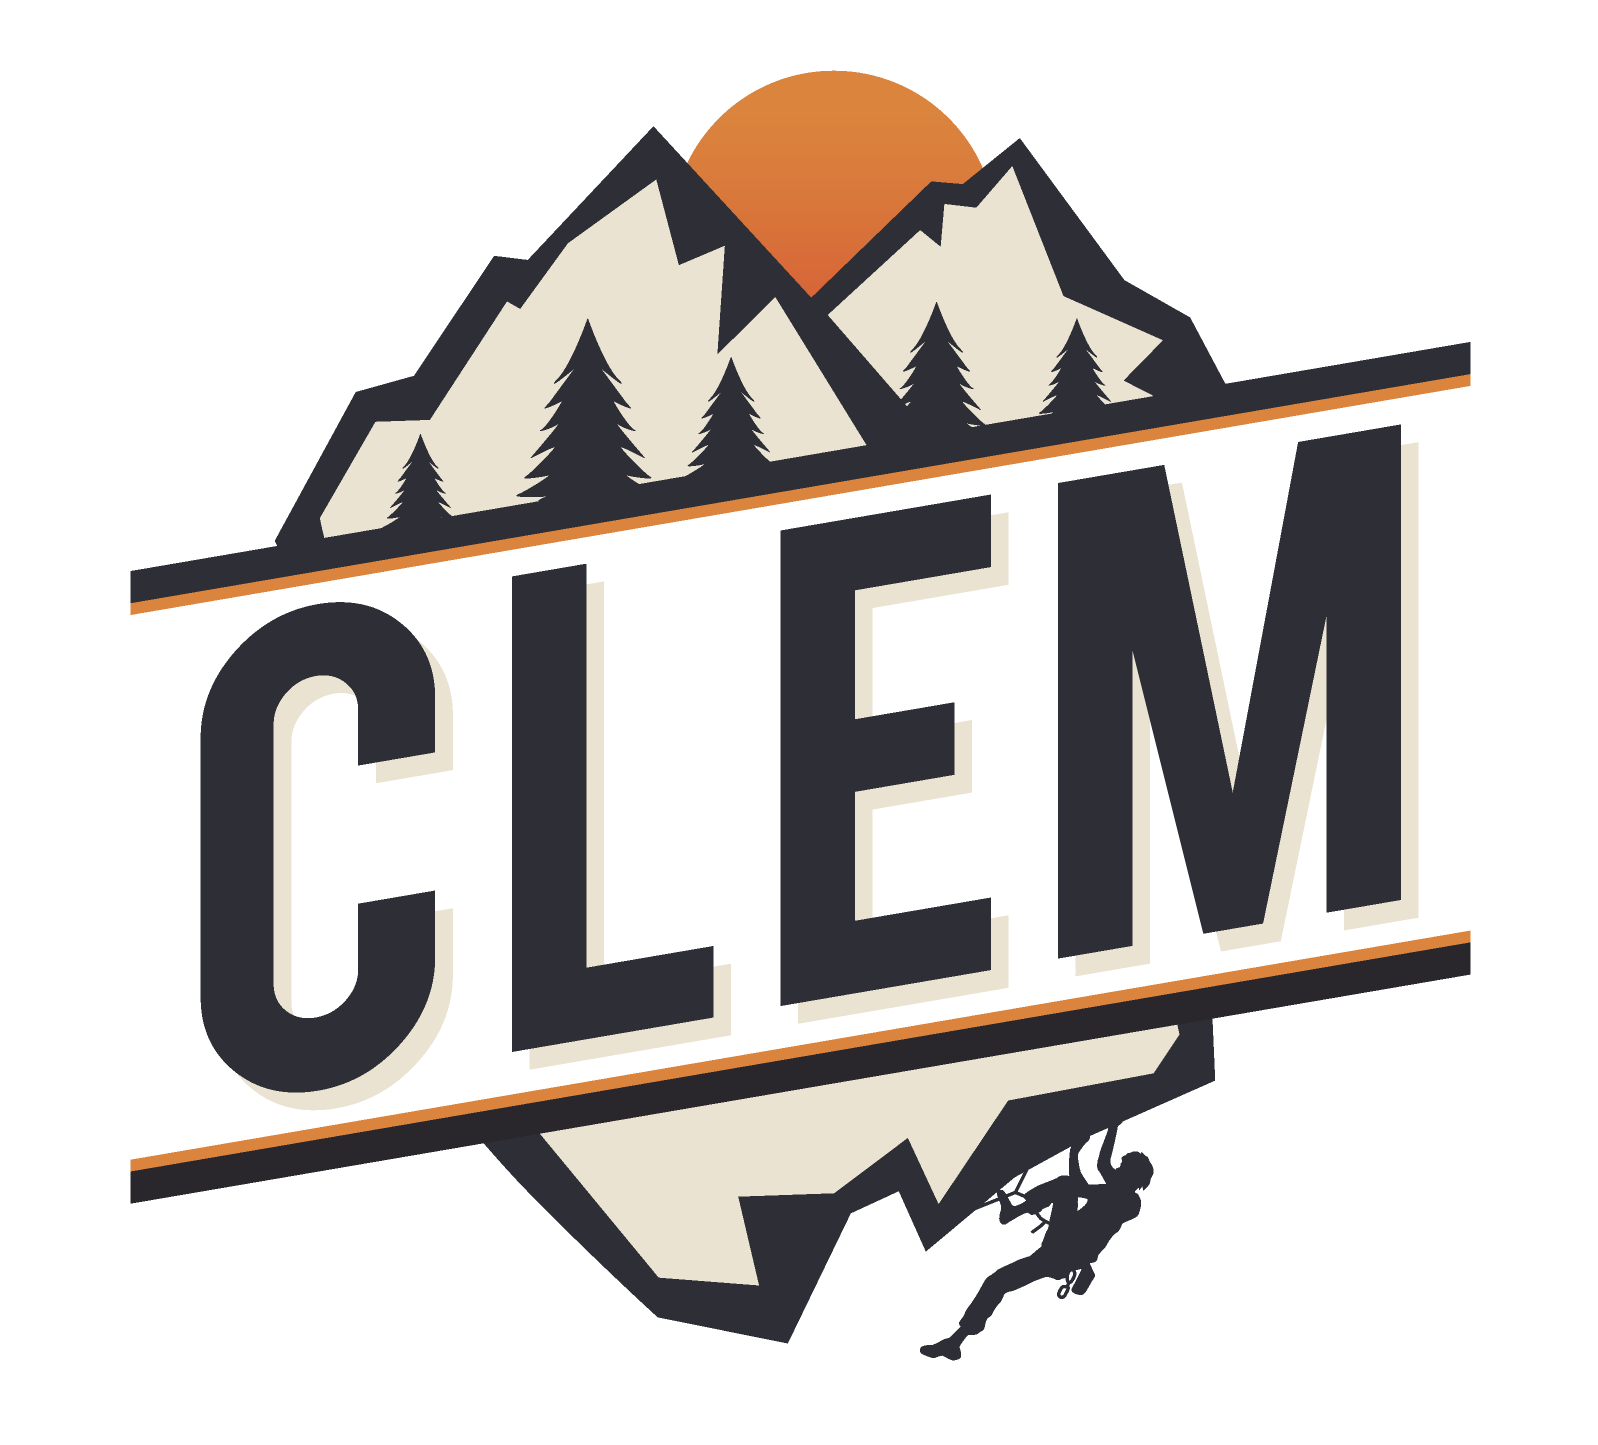 Clem concours logo 1N